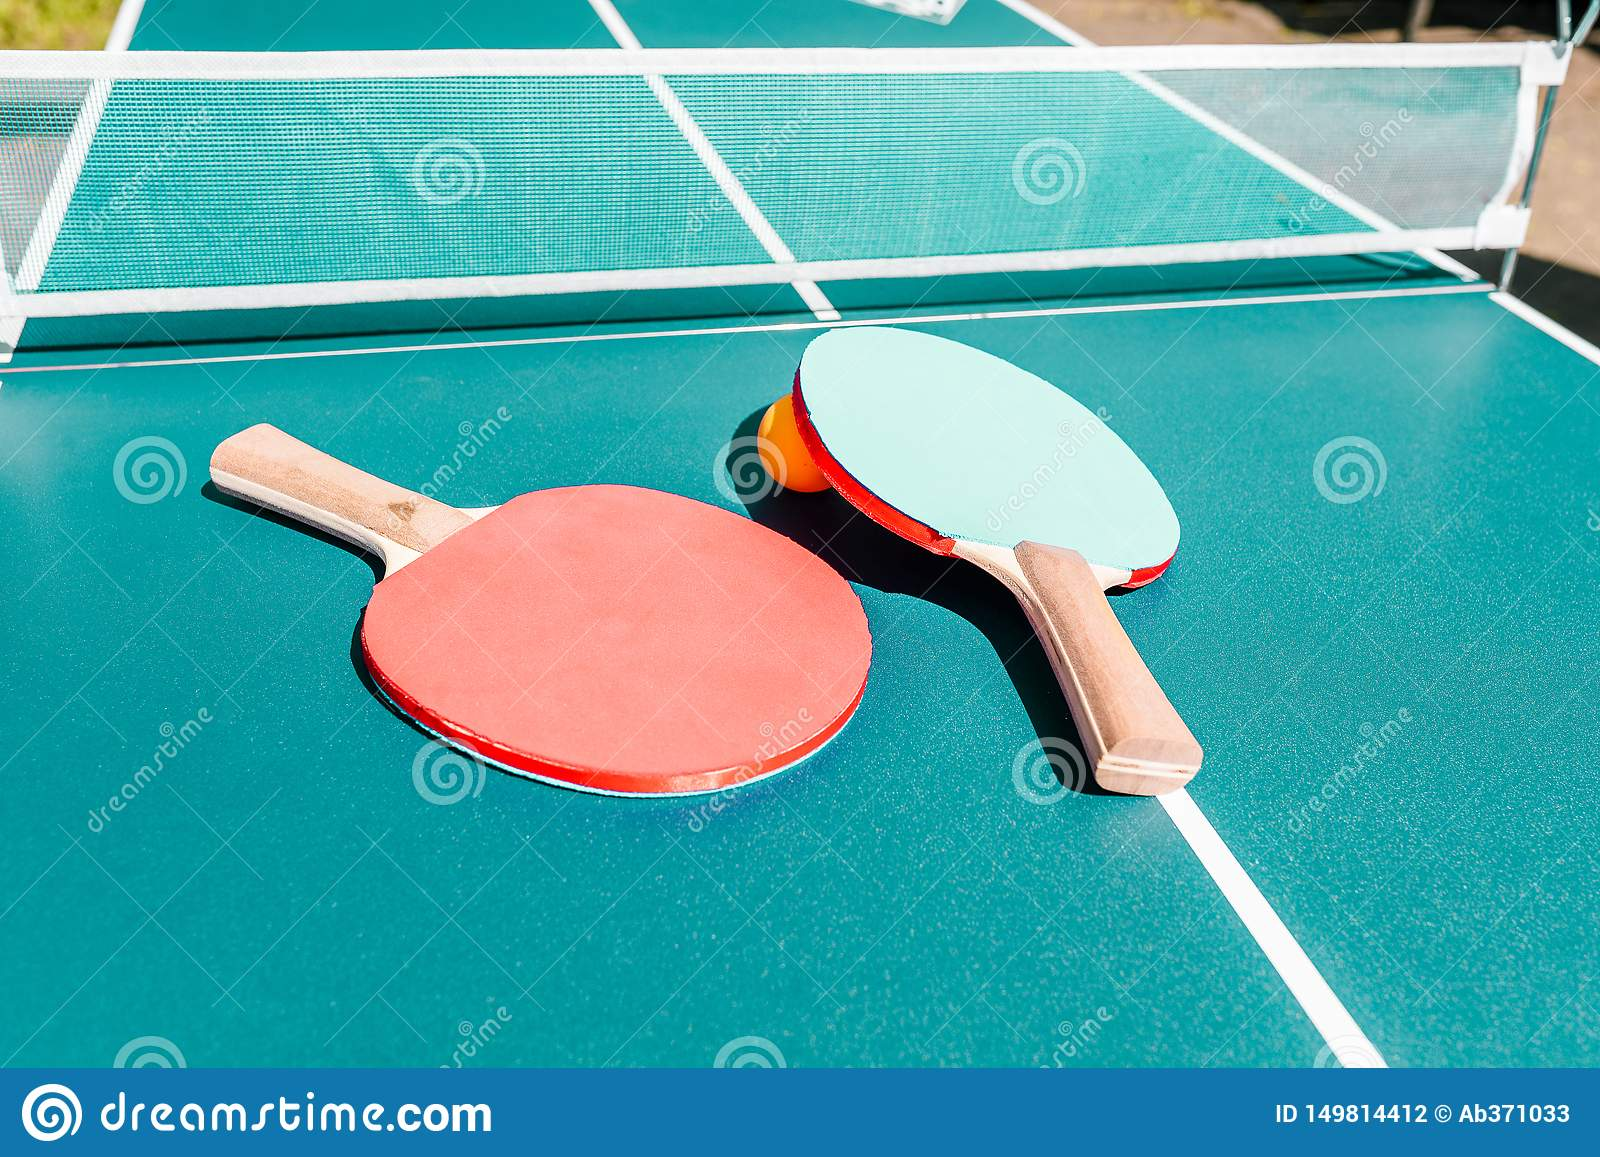 Tennis table with rackets. Bright green table with orange ball and white net. Activities and sports. Banner in a sports shop. The